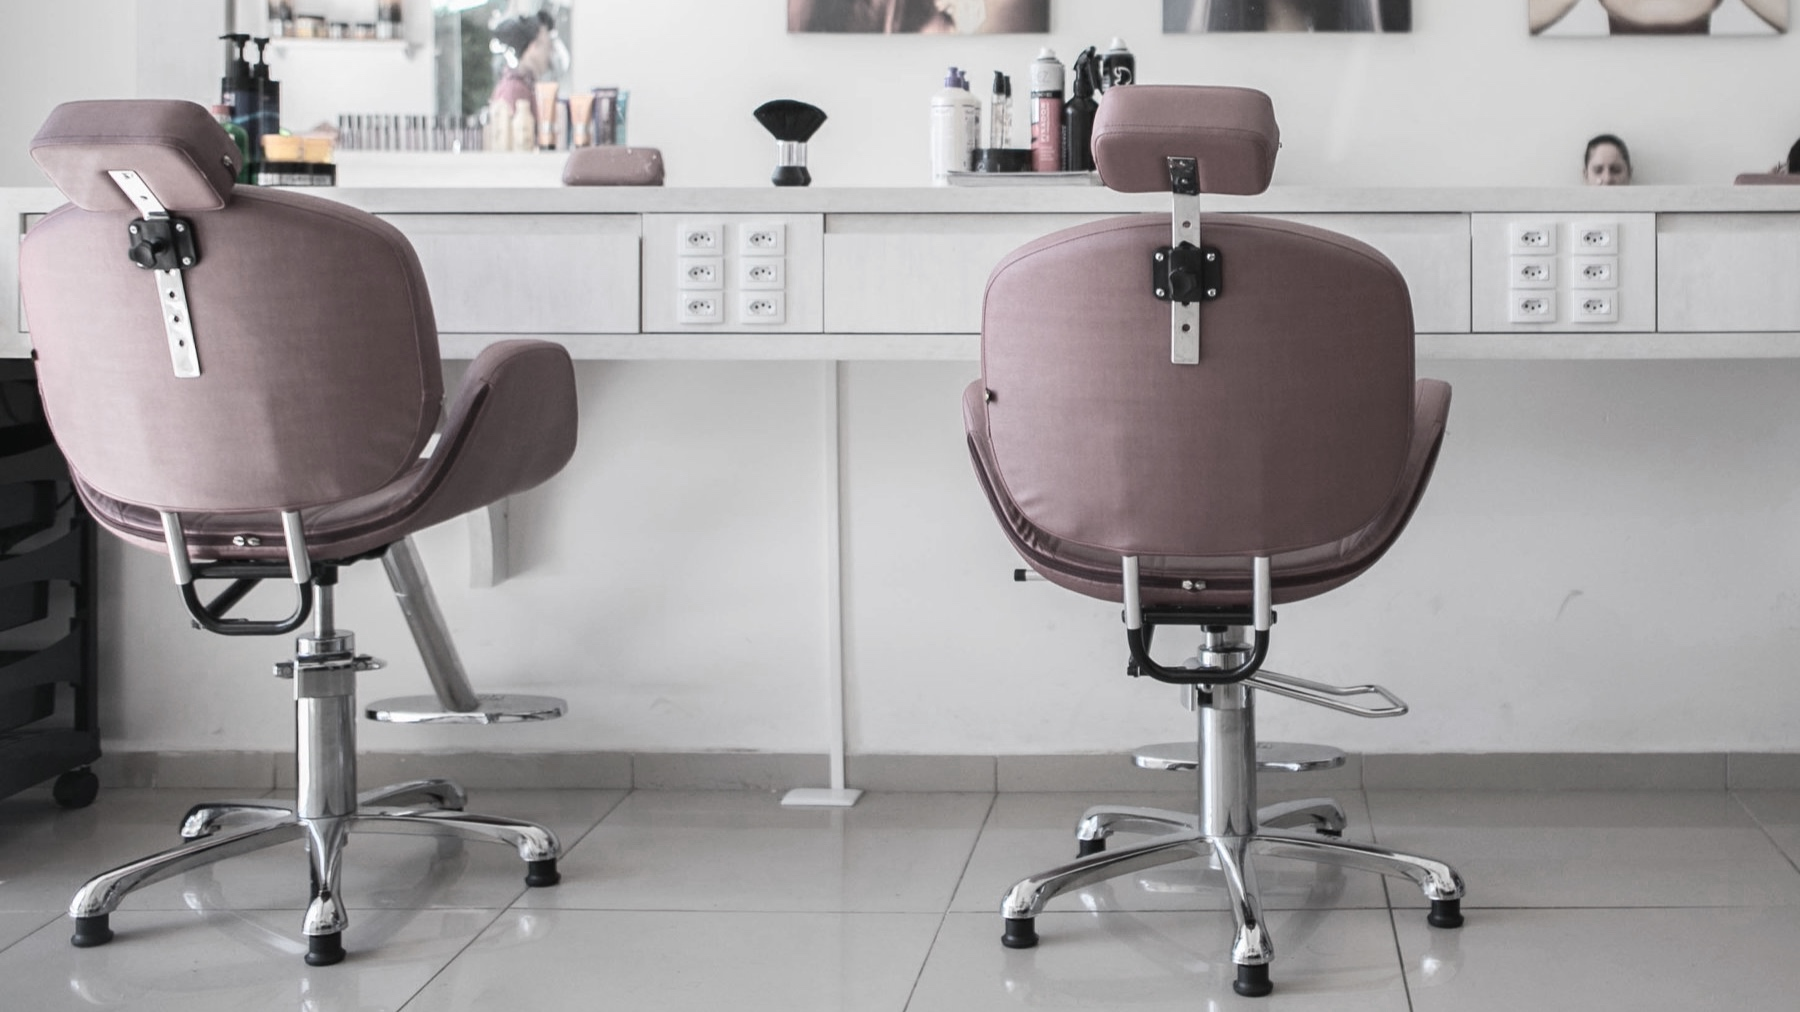 - Chair Rental Currently Available!Looking to be part of a creative and innovative team, while simultaneously being your own boss? We have chairs available for monthly rental. Please inquire with us for detailed information on becoming a stylist today!